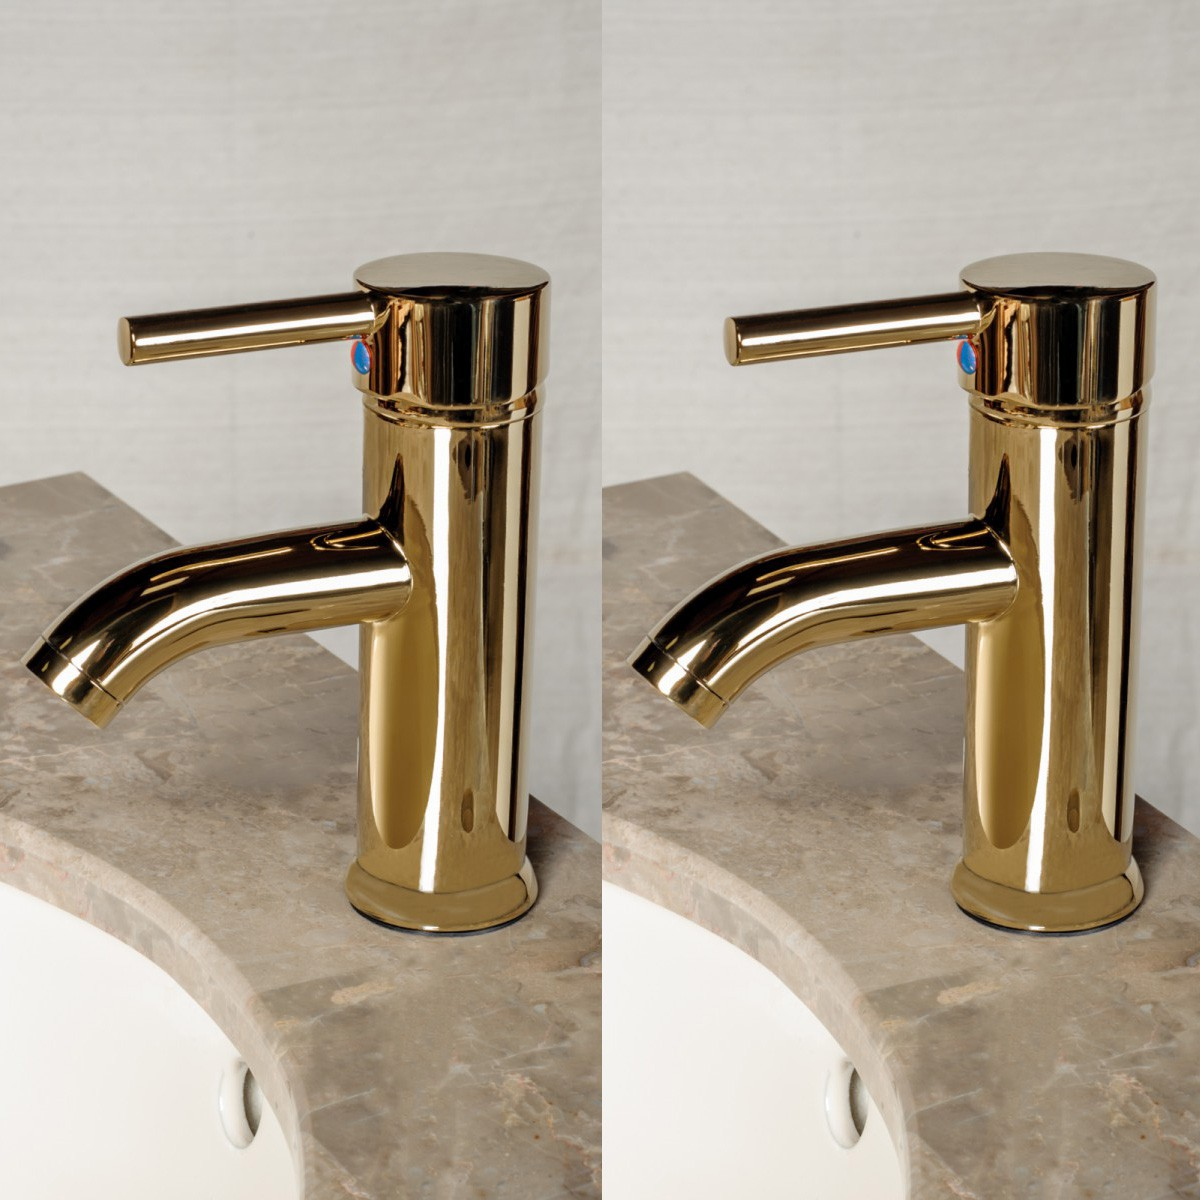 2 Bathroom Faucet Gold PVD Brass Round Single Hole 1 Handle Set of 2